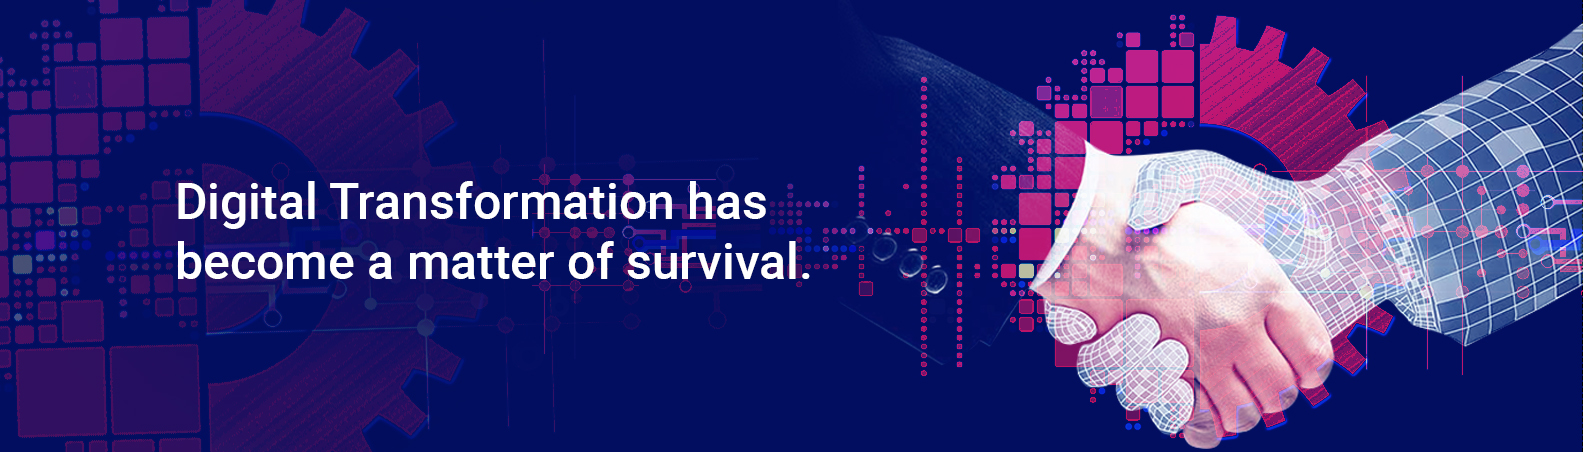 Digital Transformation is really a matter of survival to businesses today!